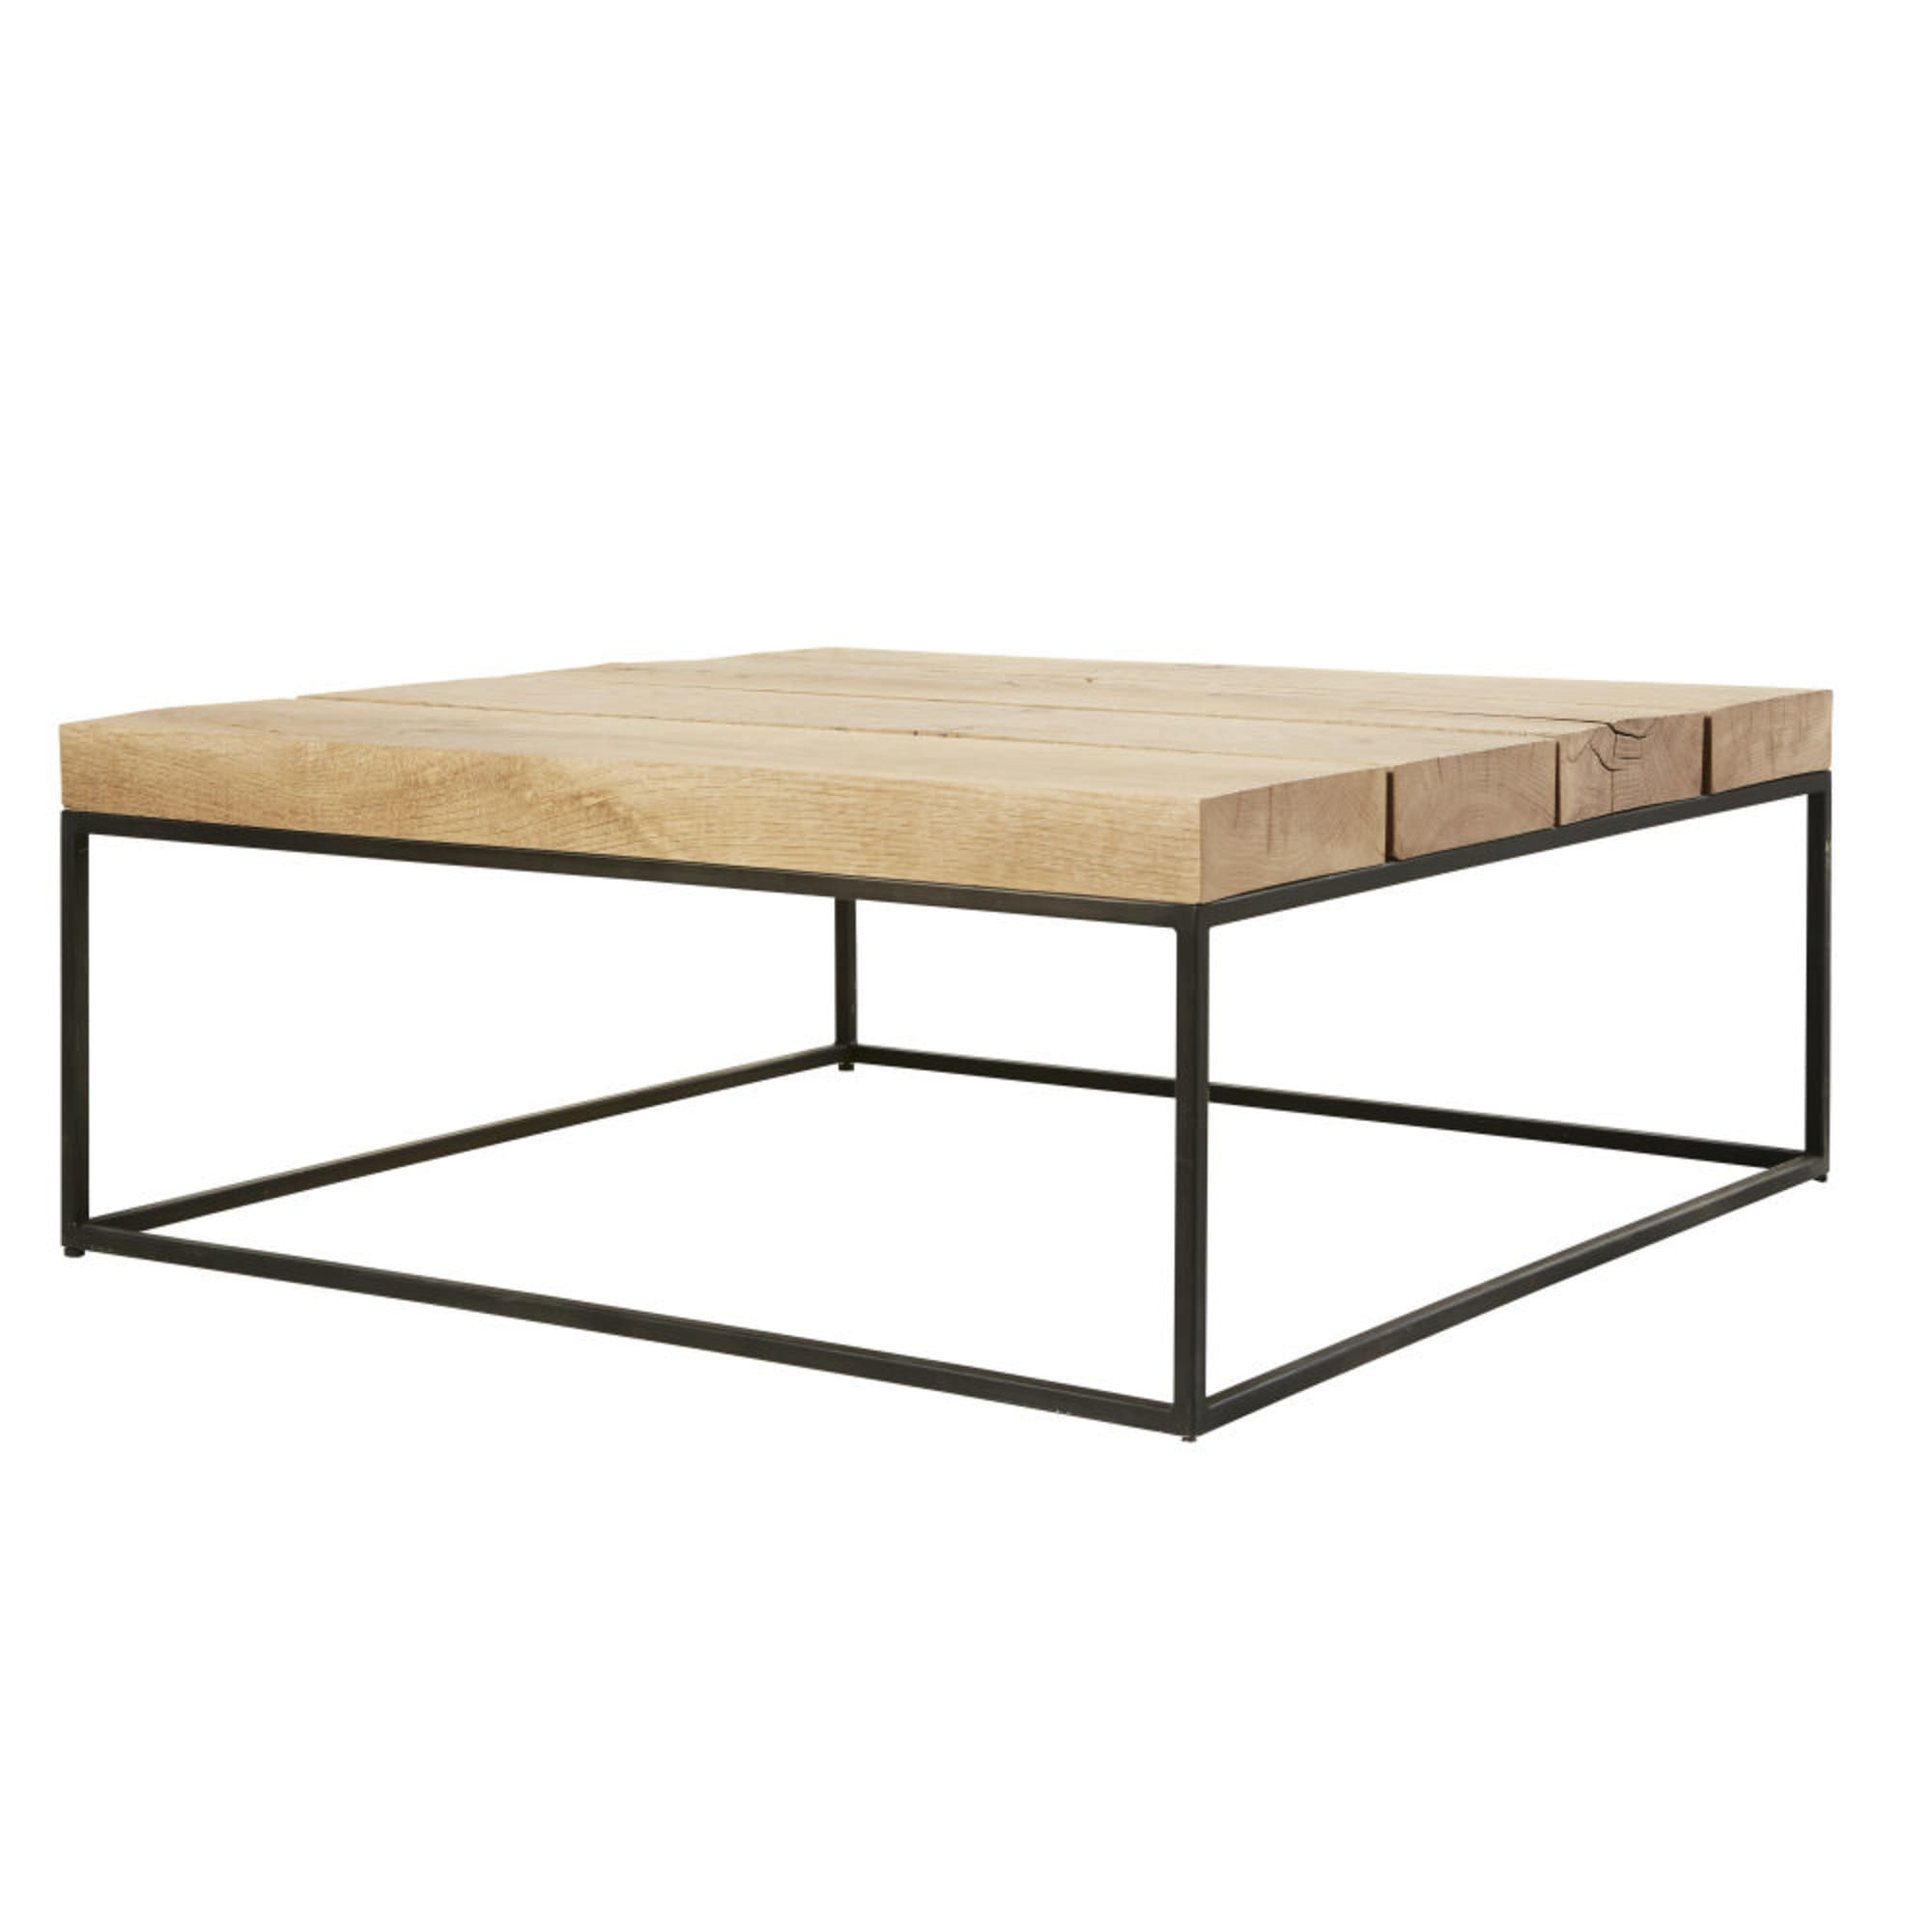 Table Basse Carree En Chene Massif Et Metal Noir Magnus Maisons Du Monde Table Basse Chene Table Basse Carree Table Basse